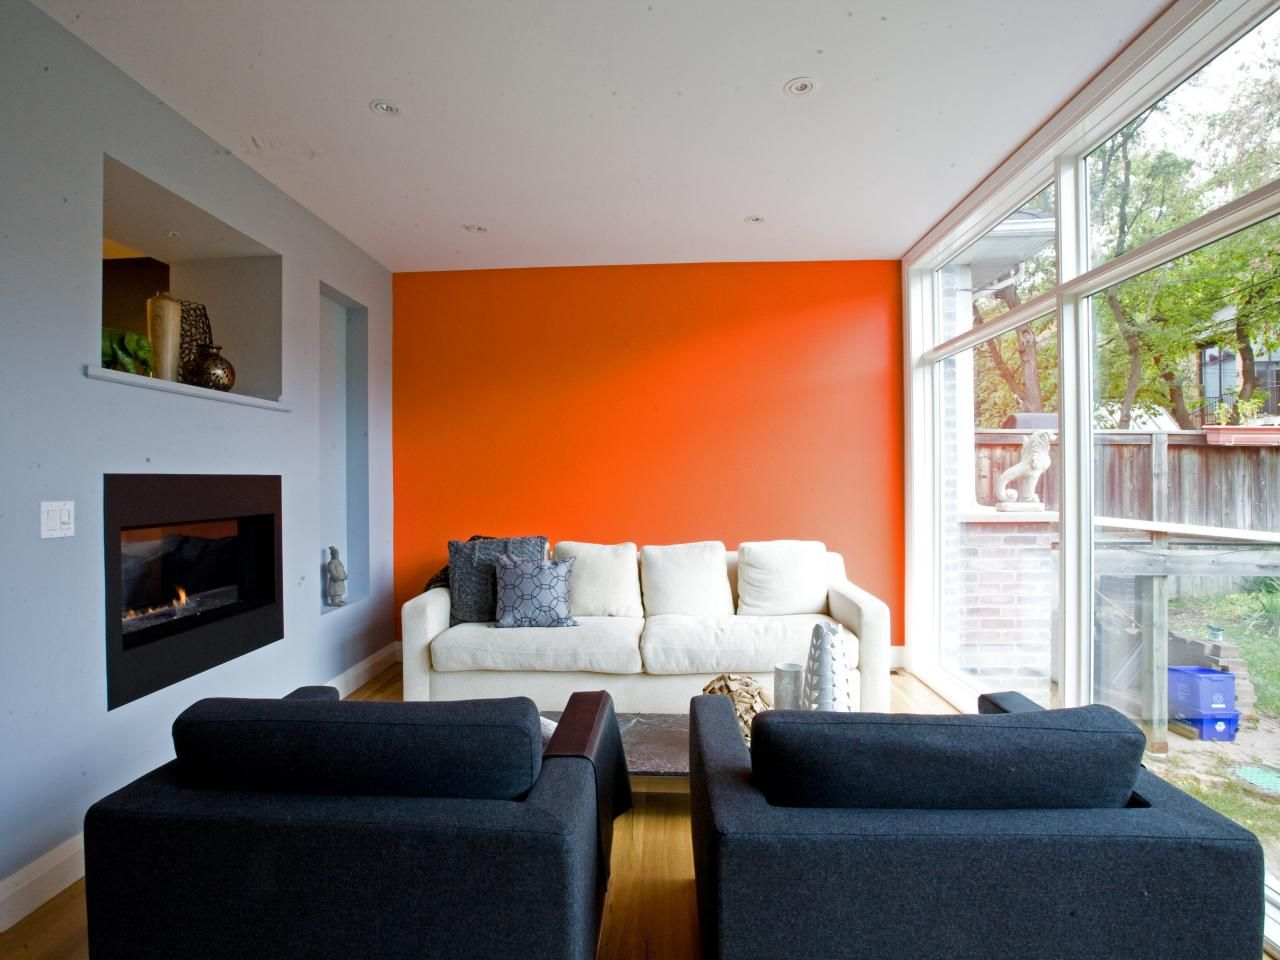 This Contemporary Living Room By Capoferro Design Features An Orange Accent Wall Gorgeous Fireplace And